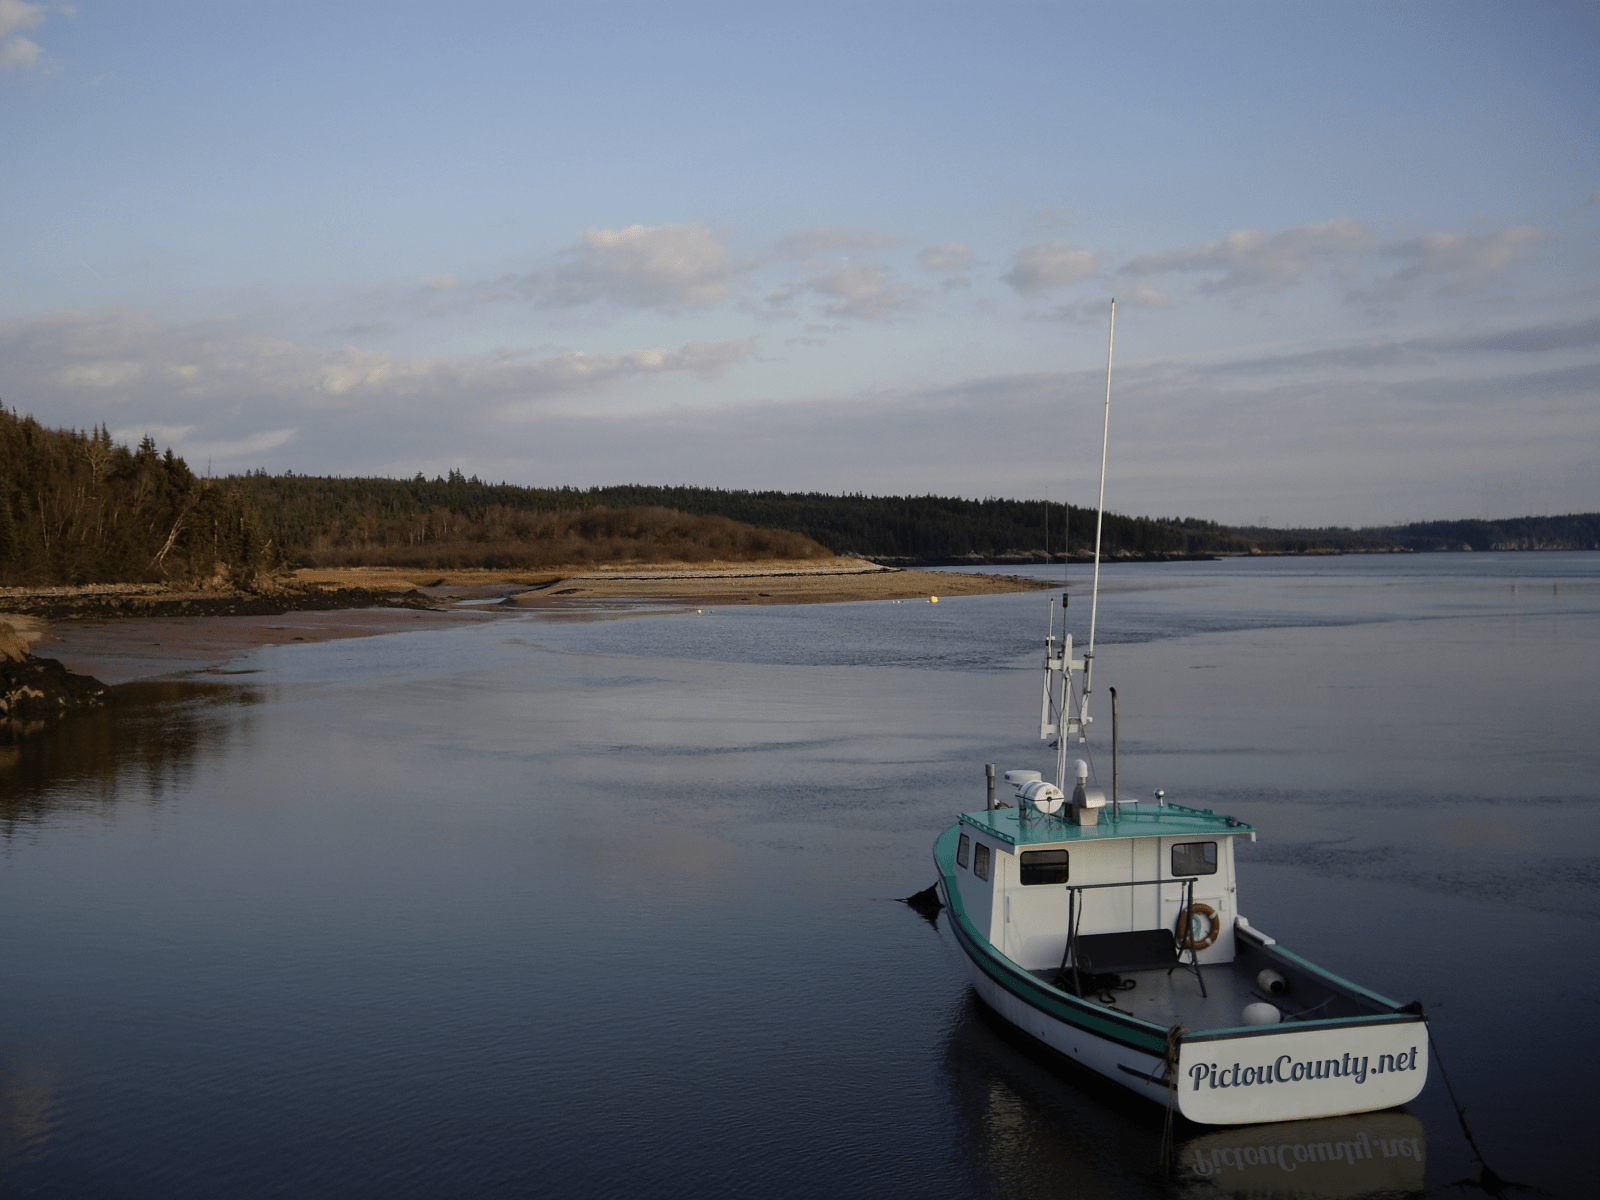 Pictou County Fishing Boat